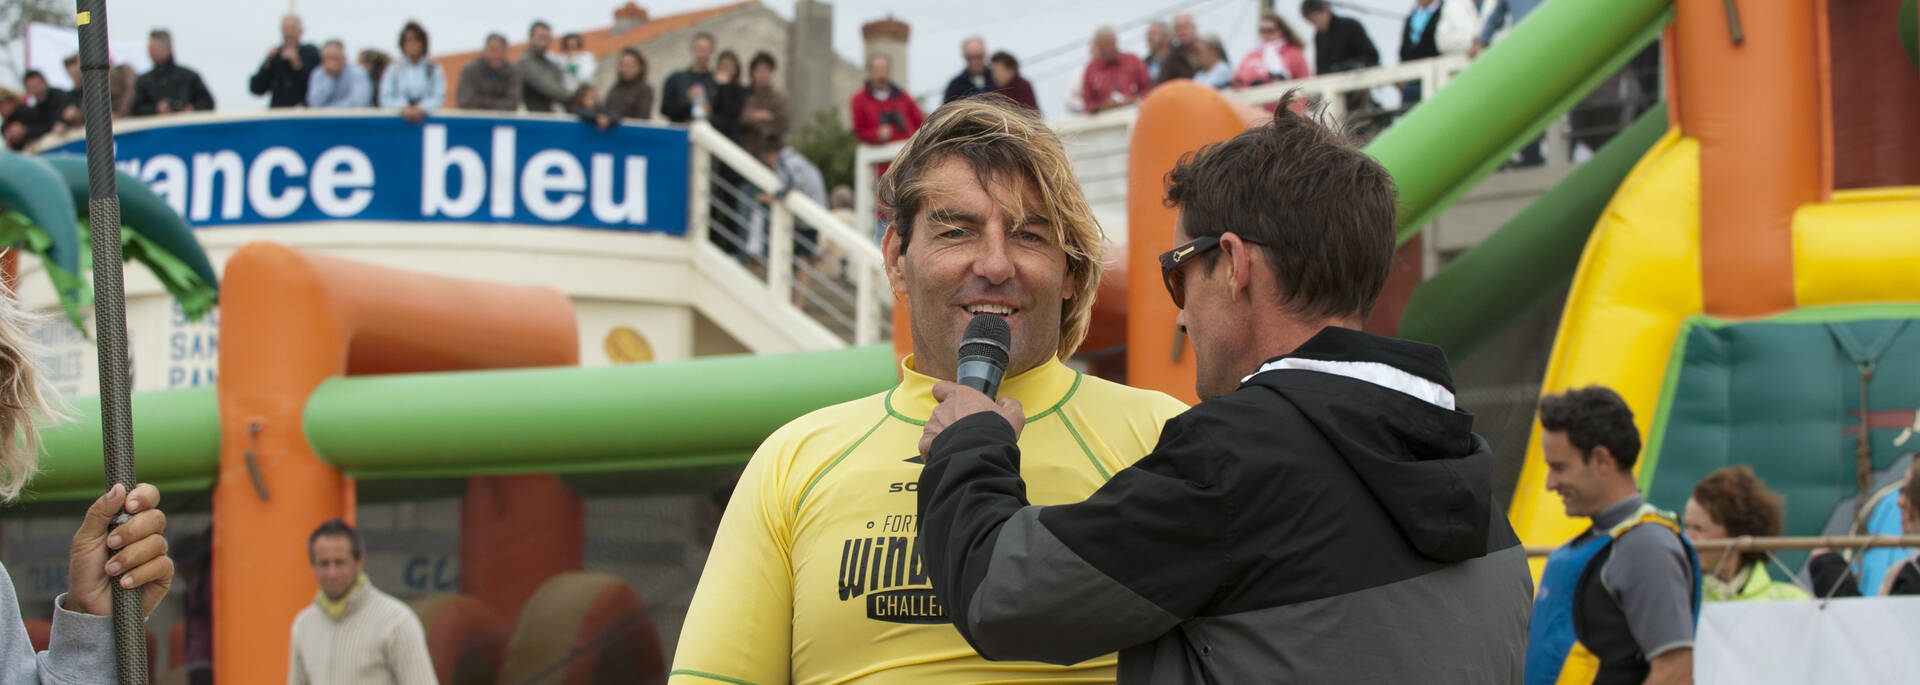 Antoine Albeau, windsurf world champion at Fort Boyard Challenge in Fouras-les-Bains - © Marie-Françoise Boufflet